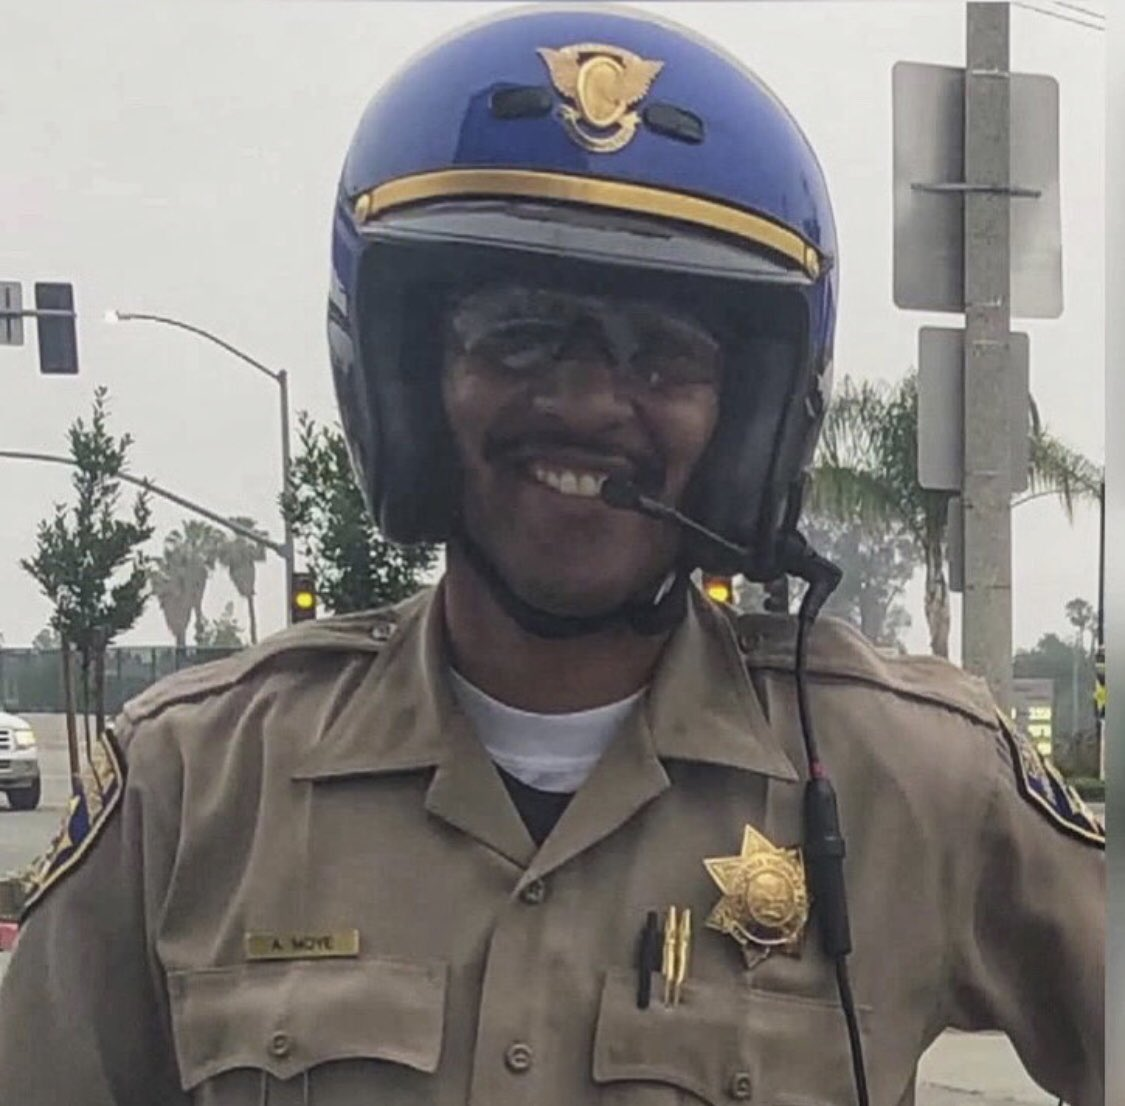 Yesterday we lost this brave man when a traffic stop turned into deadly gun battle in Riverside. Rest In Peace CHP officer Andre Moye Jr. #BlueLivesMatter